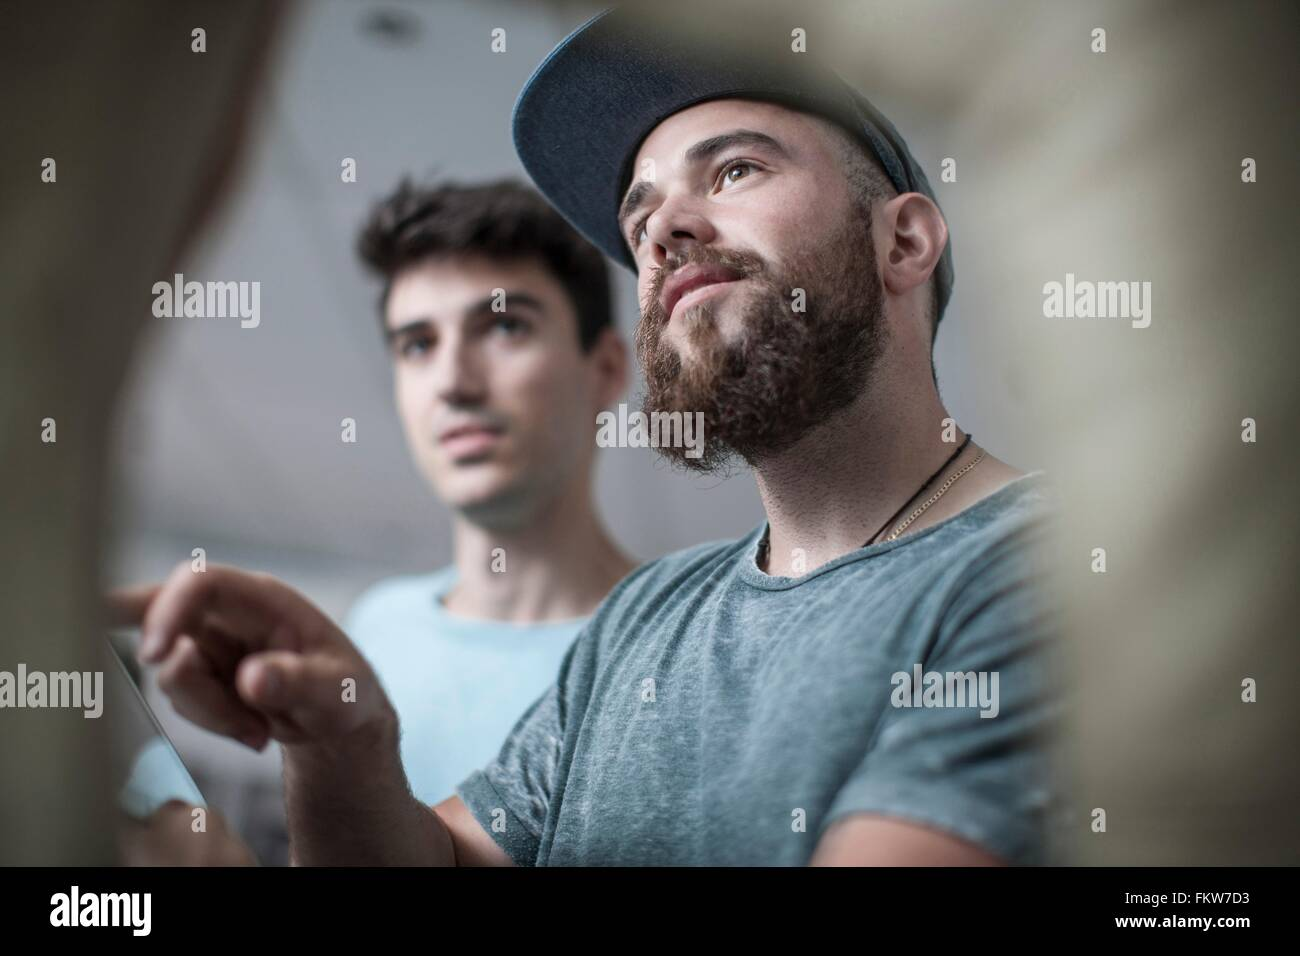 Two young men at office reception - Stock Image